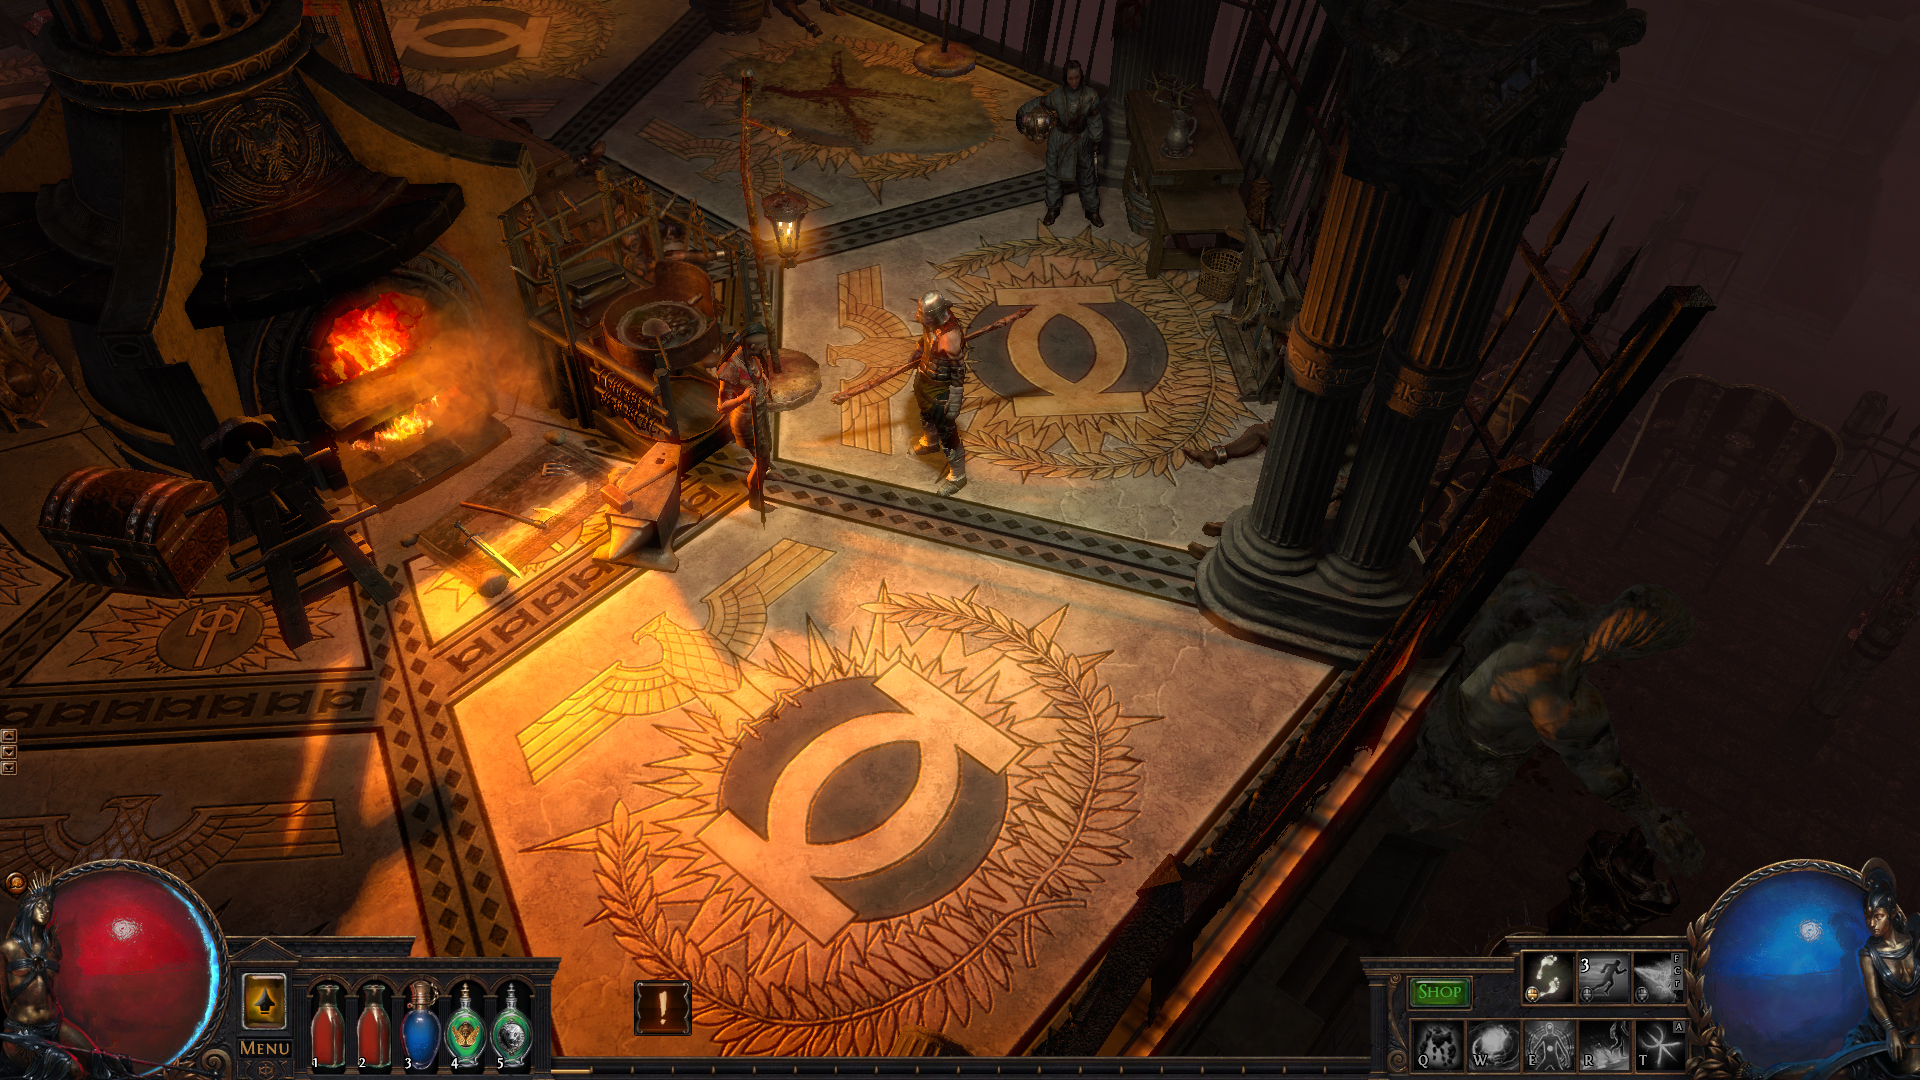 Path Of Exile Wallpaper Fall Of Oriath Path Of Exile Act 5 The Fall Of Oriath Brings Major